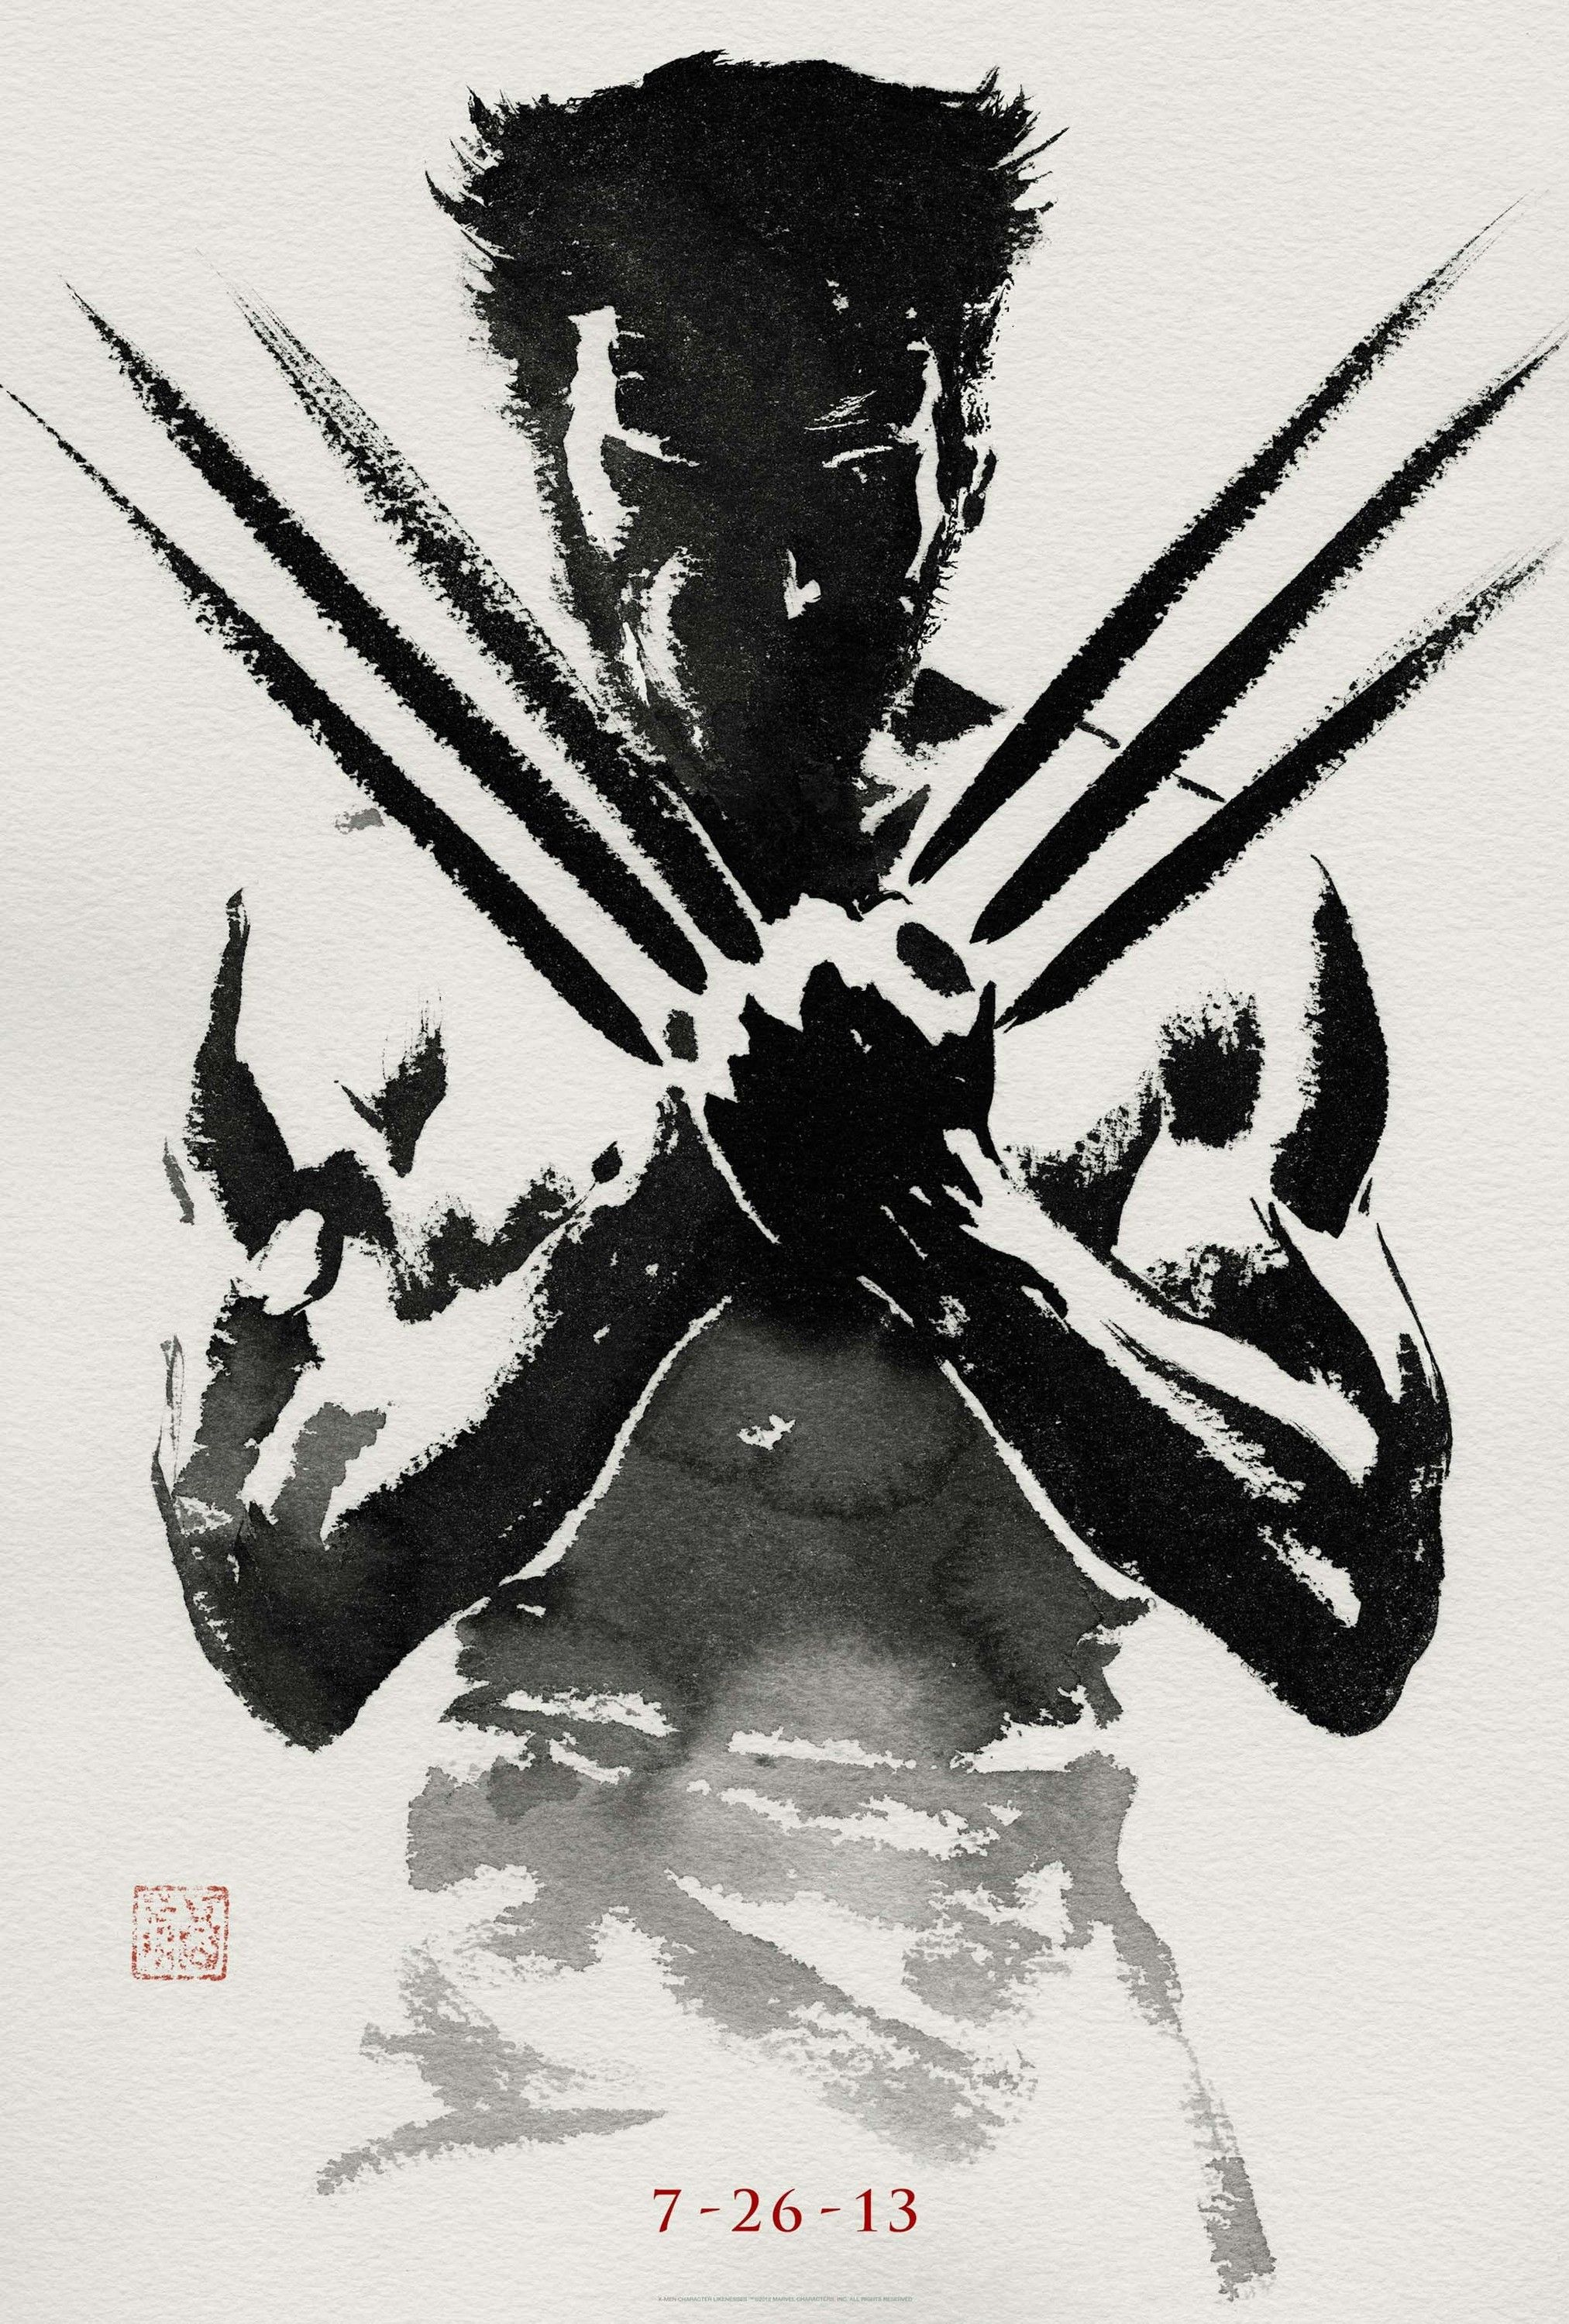 Pin by WoongHo Yaang on G   The wolverine, Cómics, Arte de ...